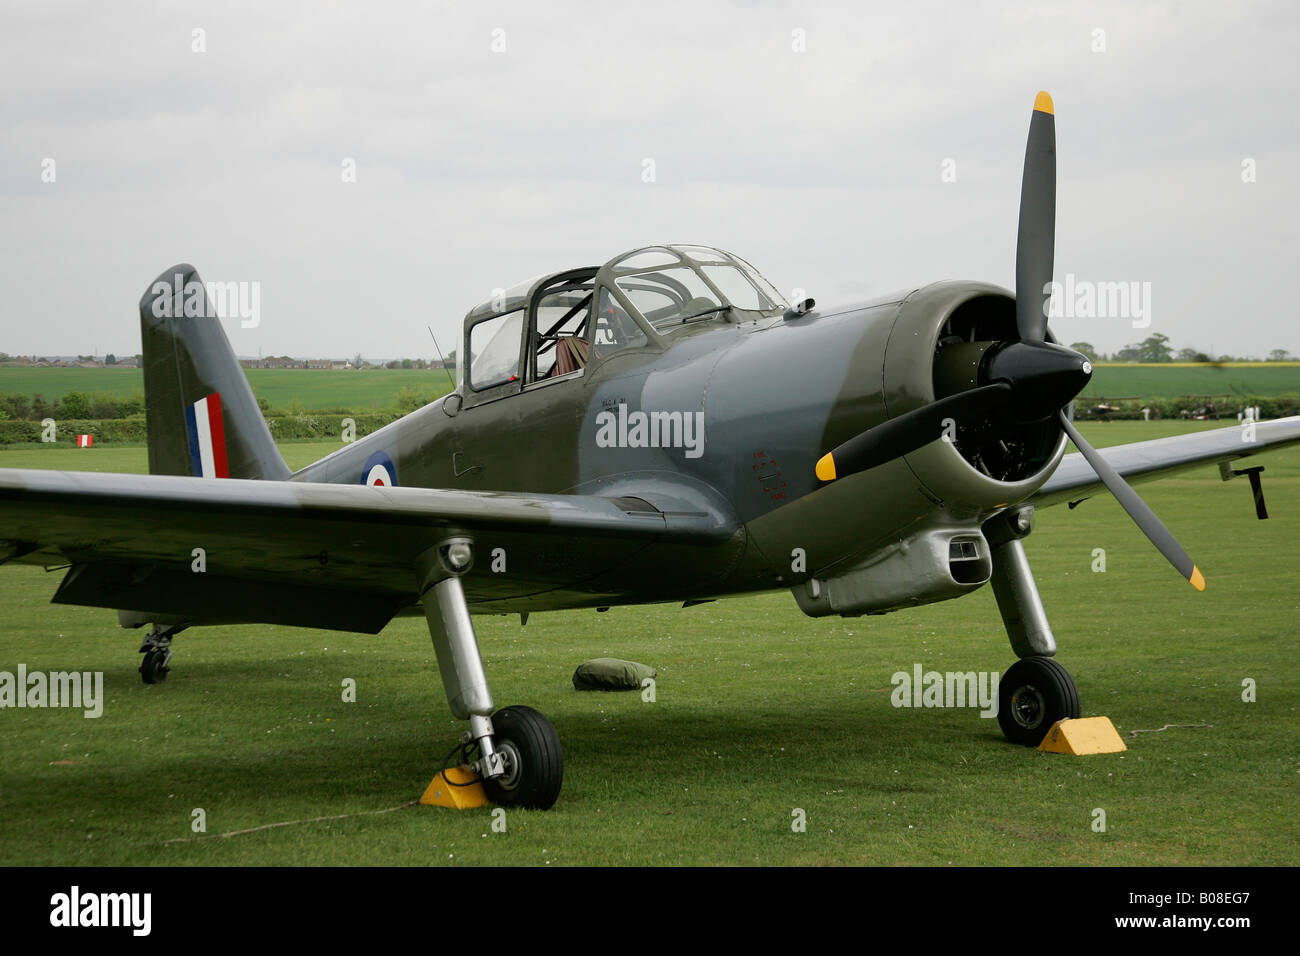 PERCIVAL PROVOST 1950'S RAF TRAINER AIRCRAFT - Stock Image